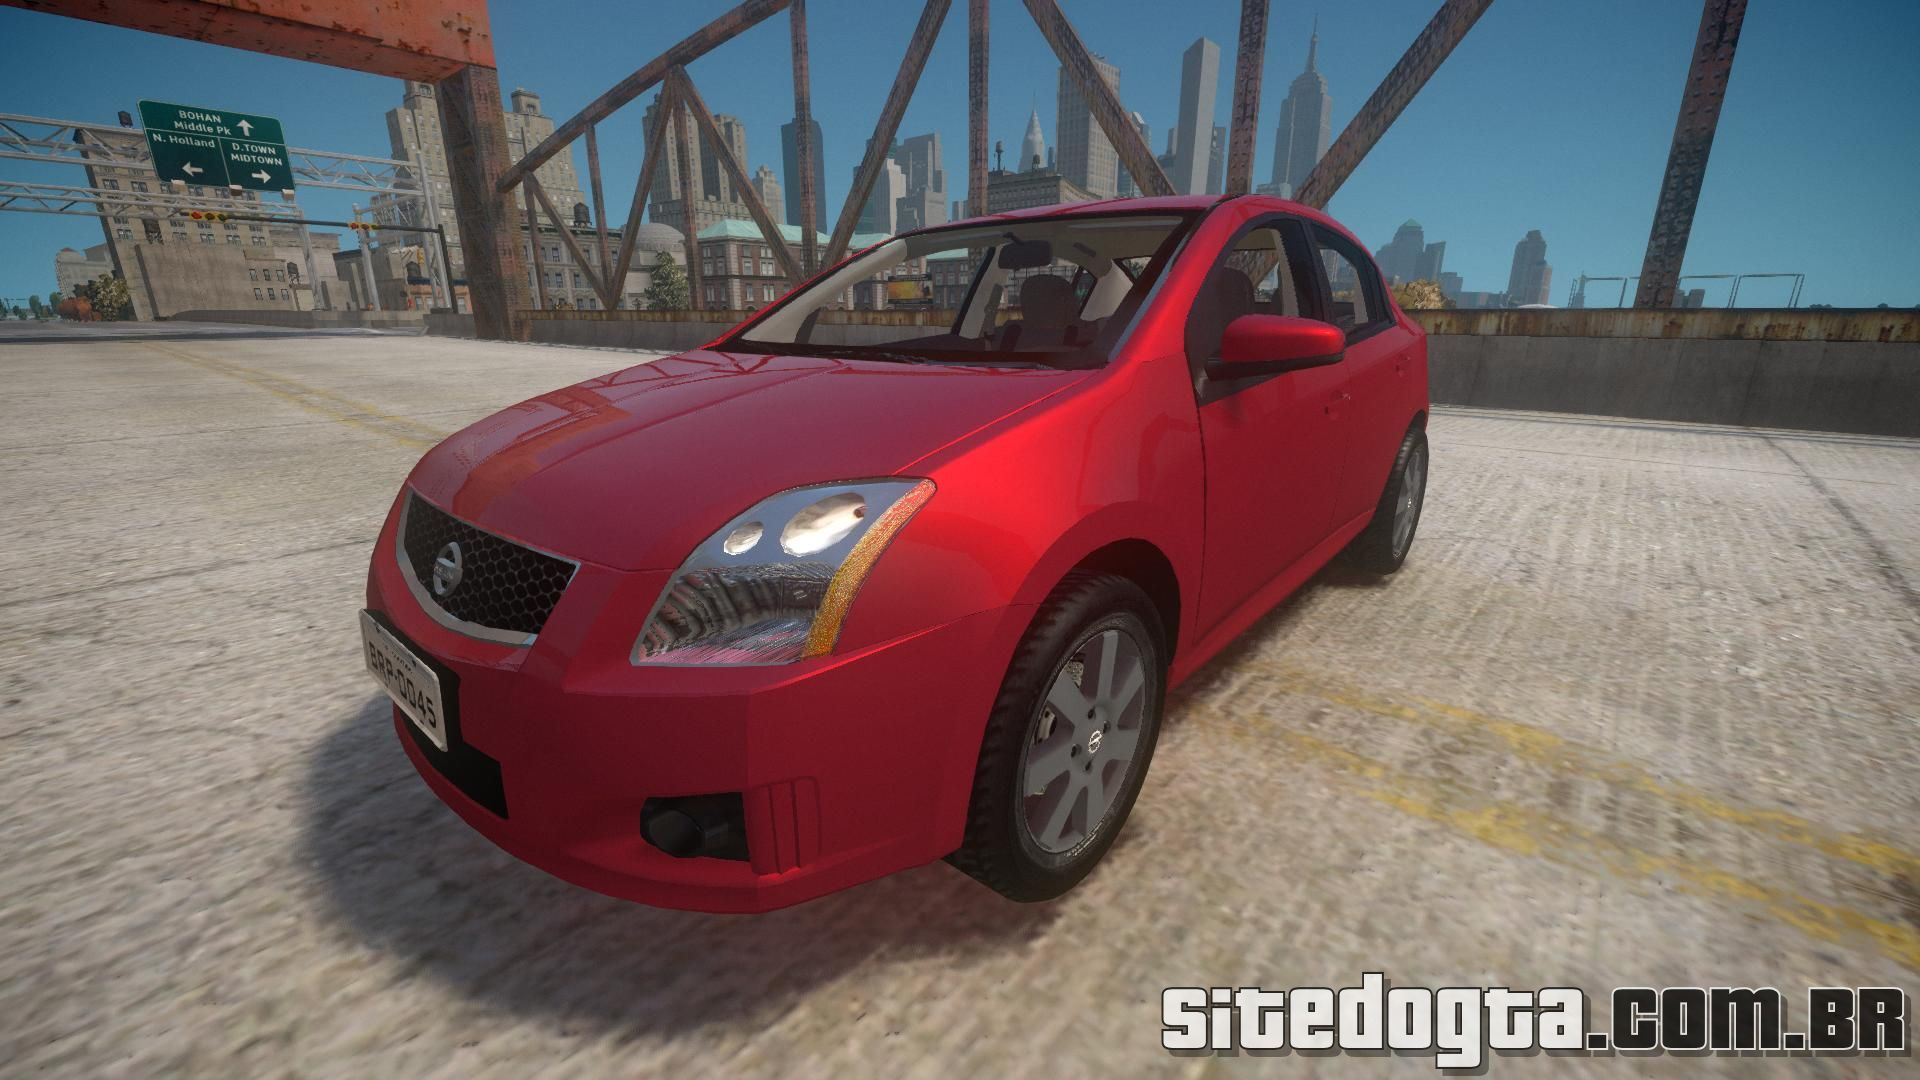 Carro Nissan Sentra S 2008 para GTA IV | Site do GTA